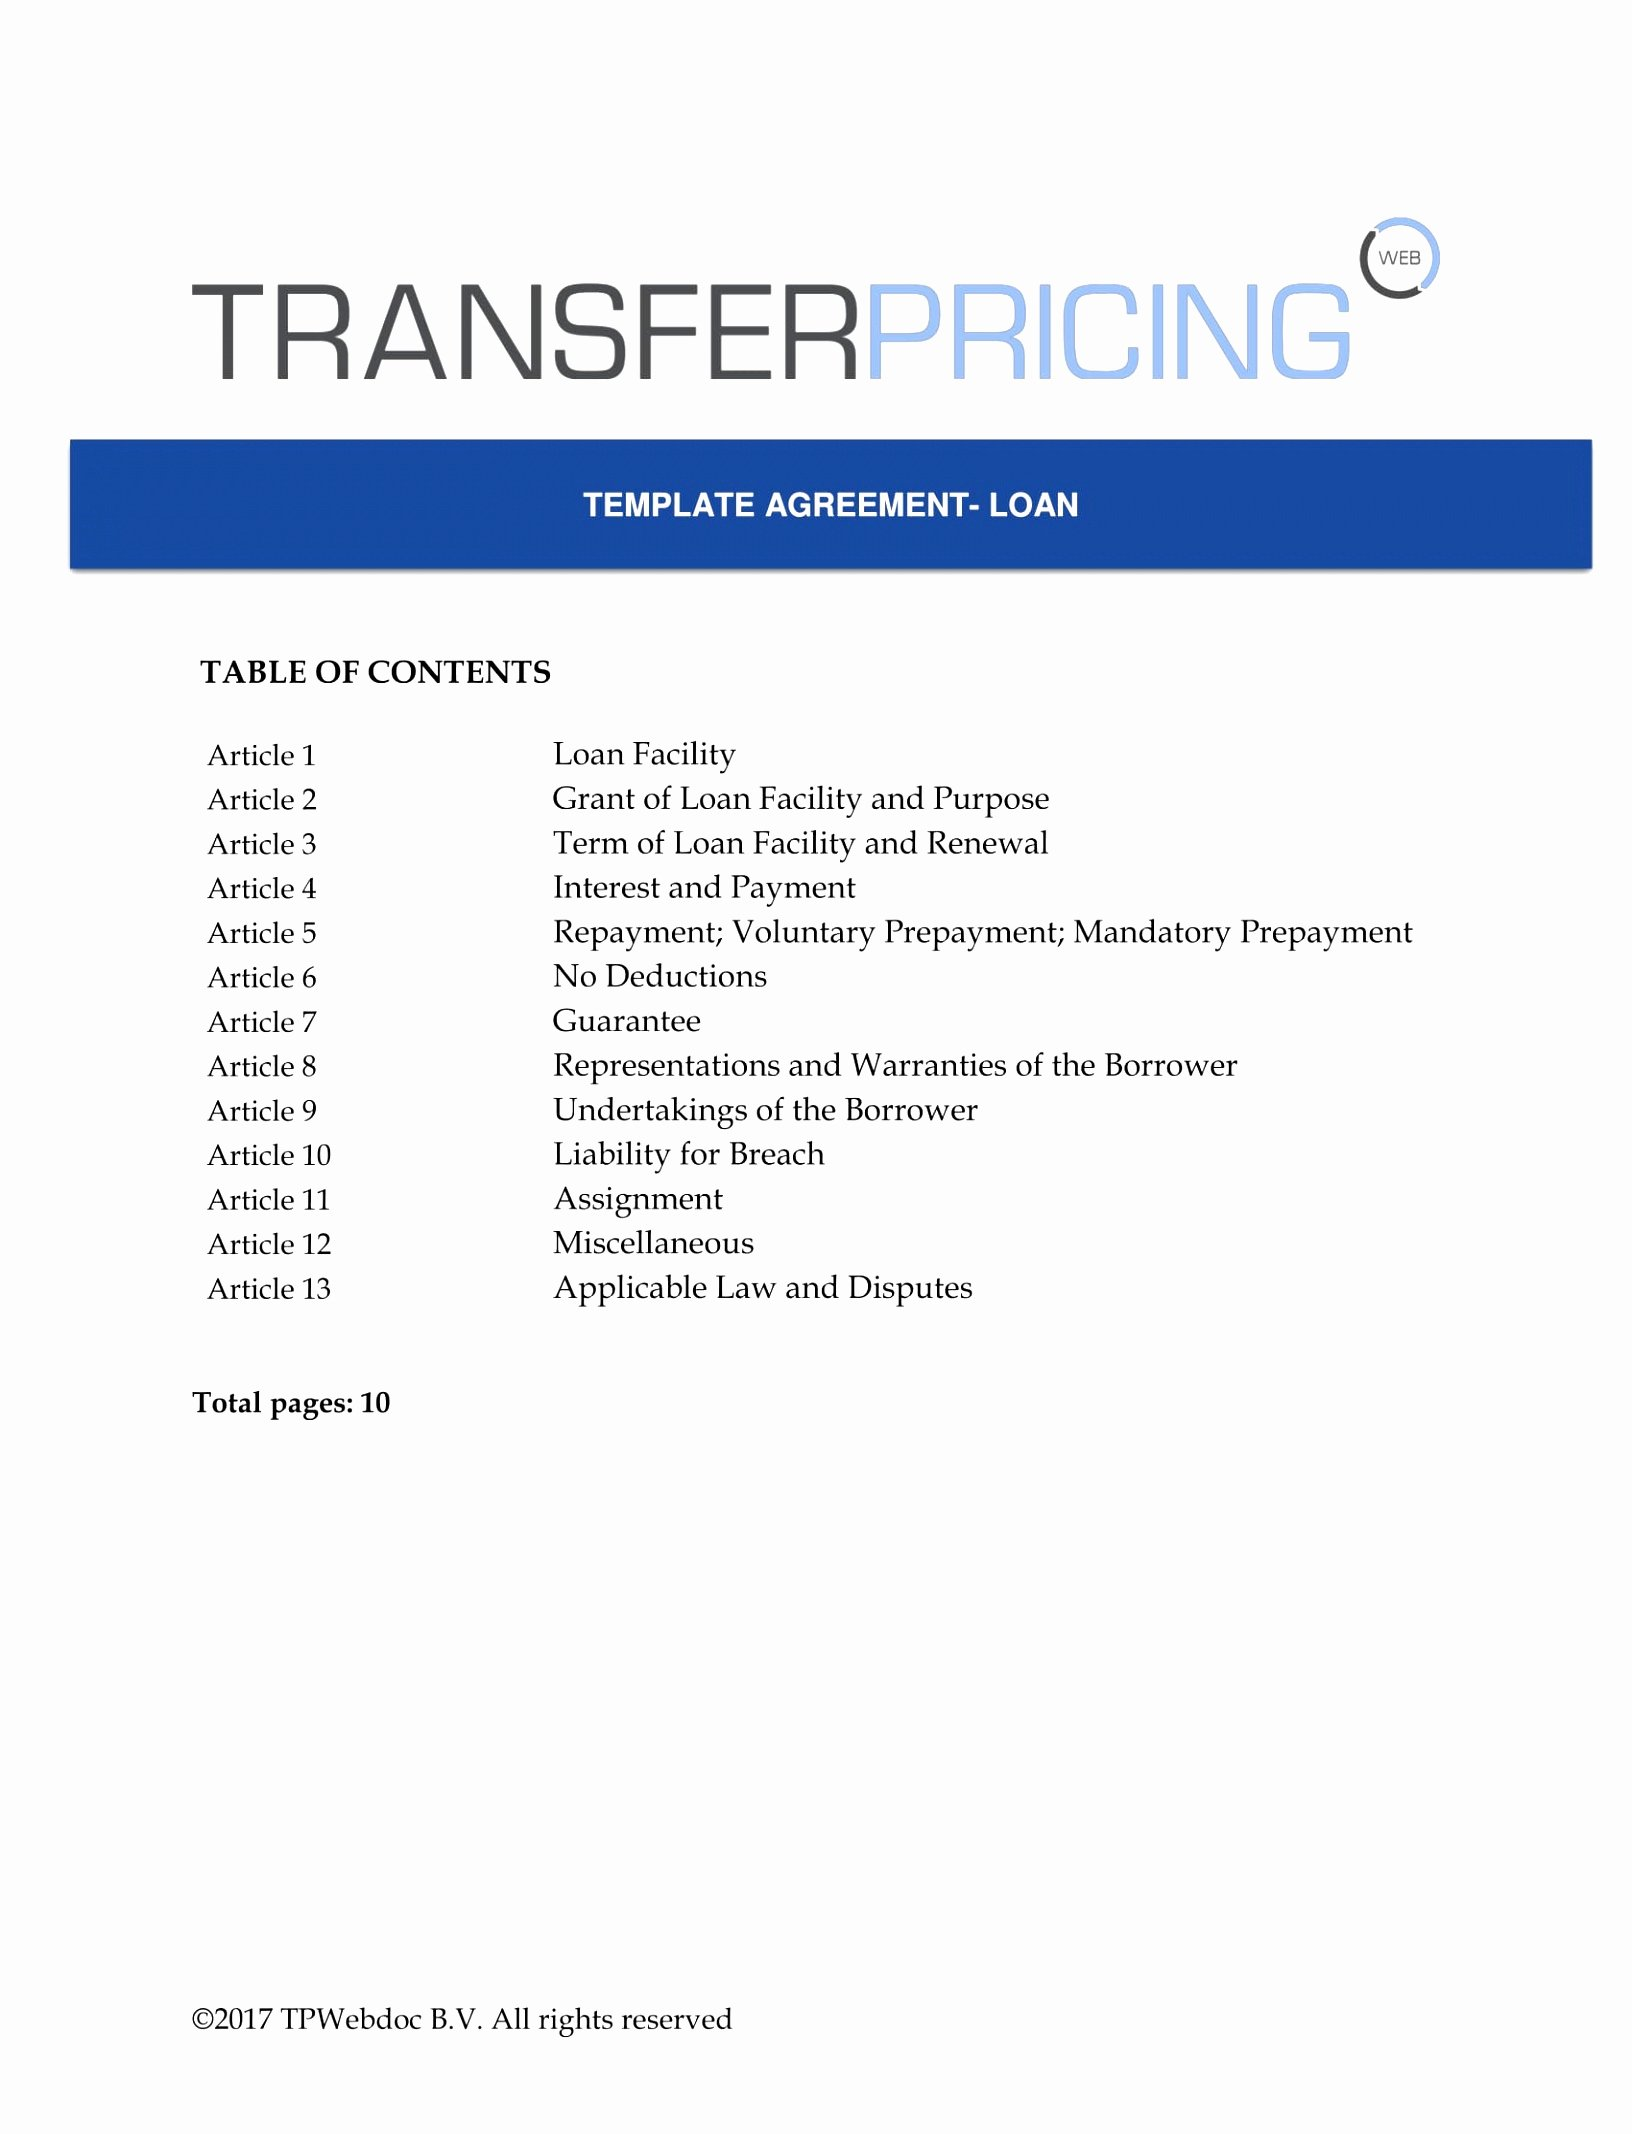 Pricing Agreement Letter Luxury 10 Transfer Pricing Agreement Template yetra